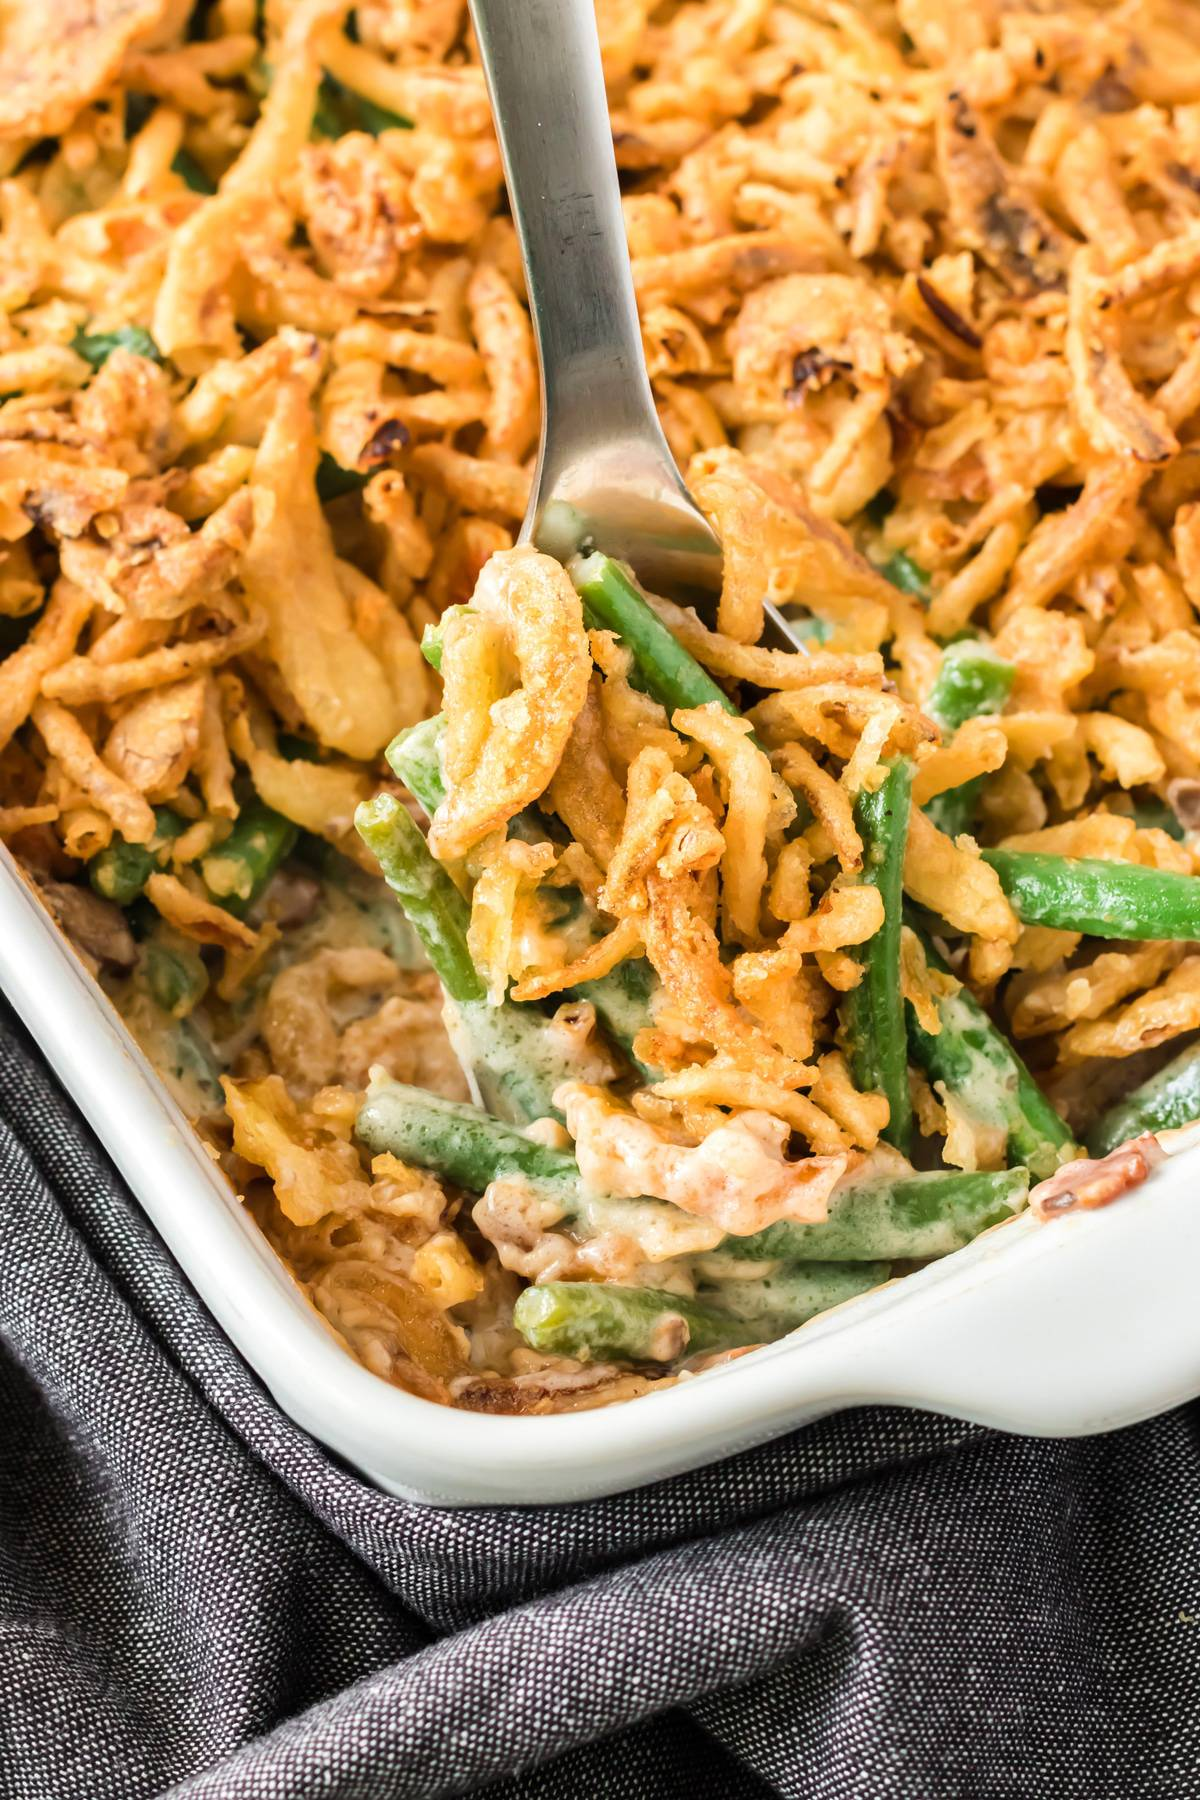 green bean casserole recipe ultimate best from scratch cheese mushrooms bacon cream daring gourmet